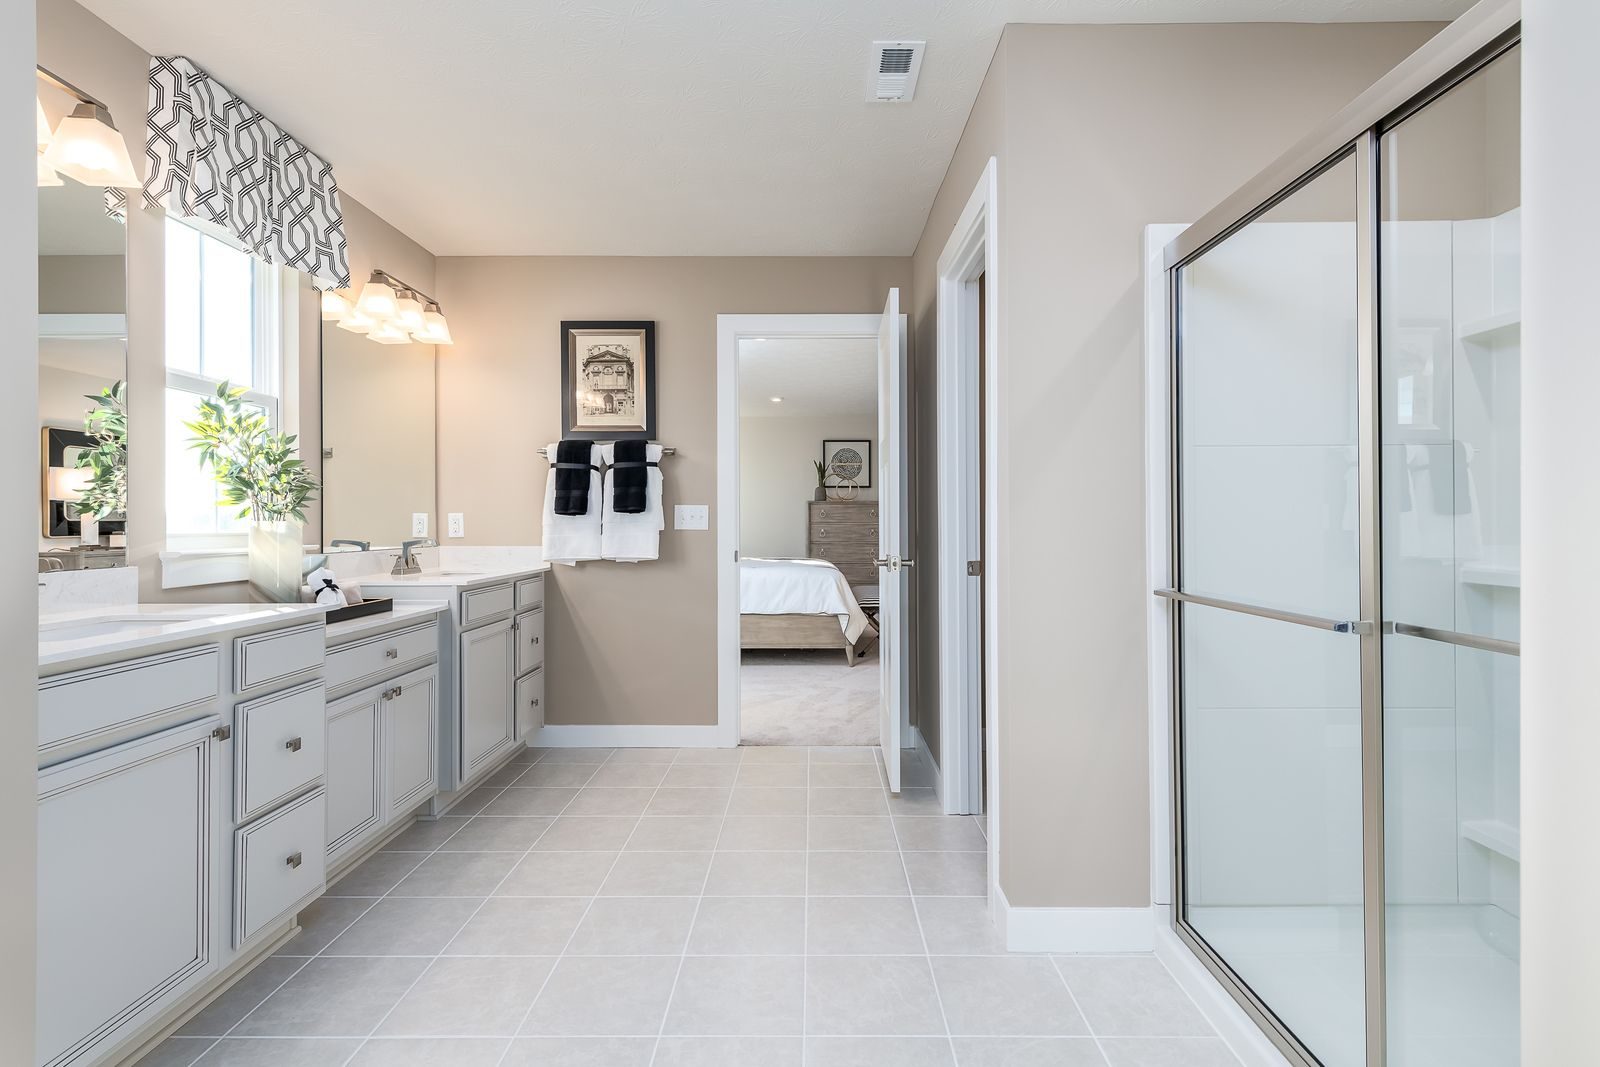 Bathroom featured in the Hudson By Ryan Homes in Nashville, TN